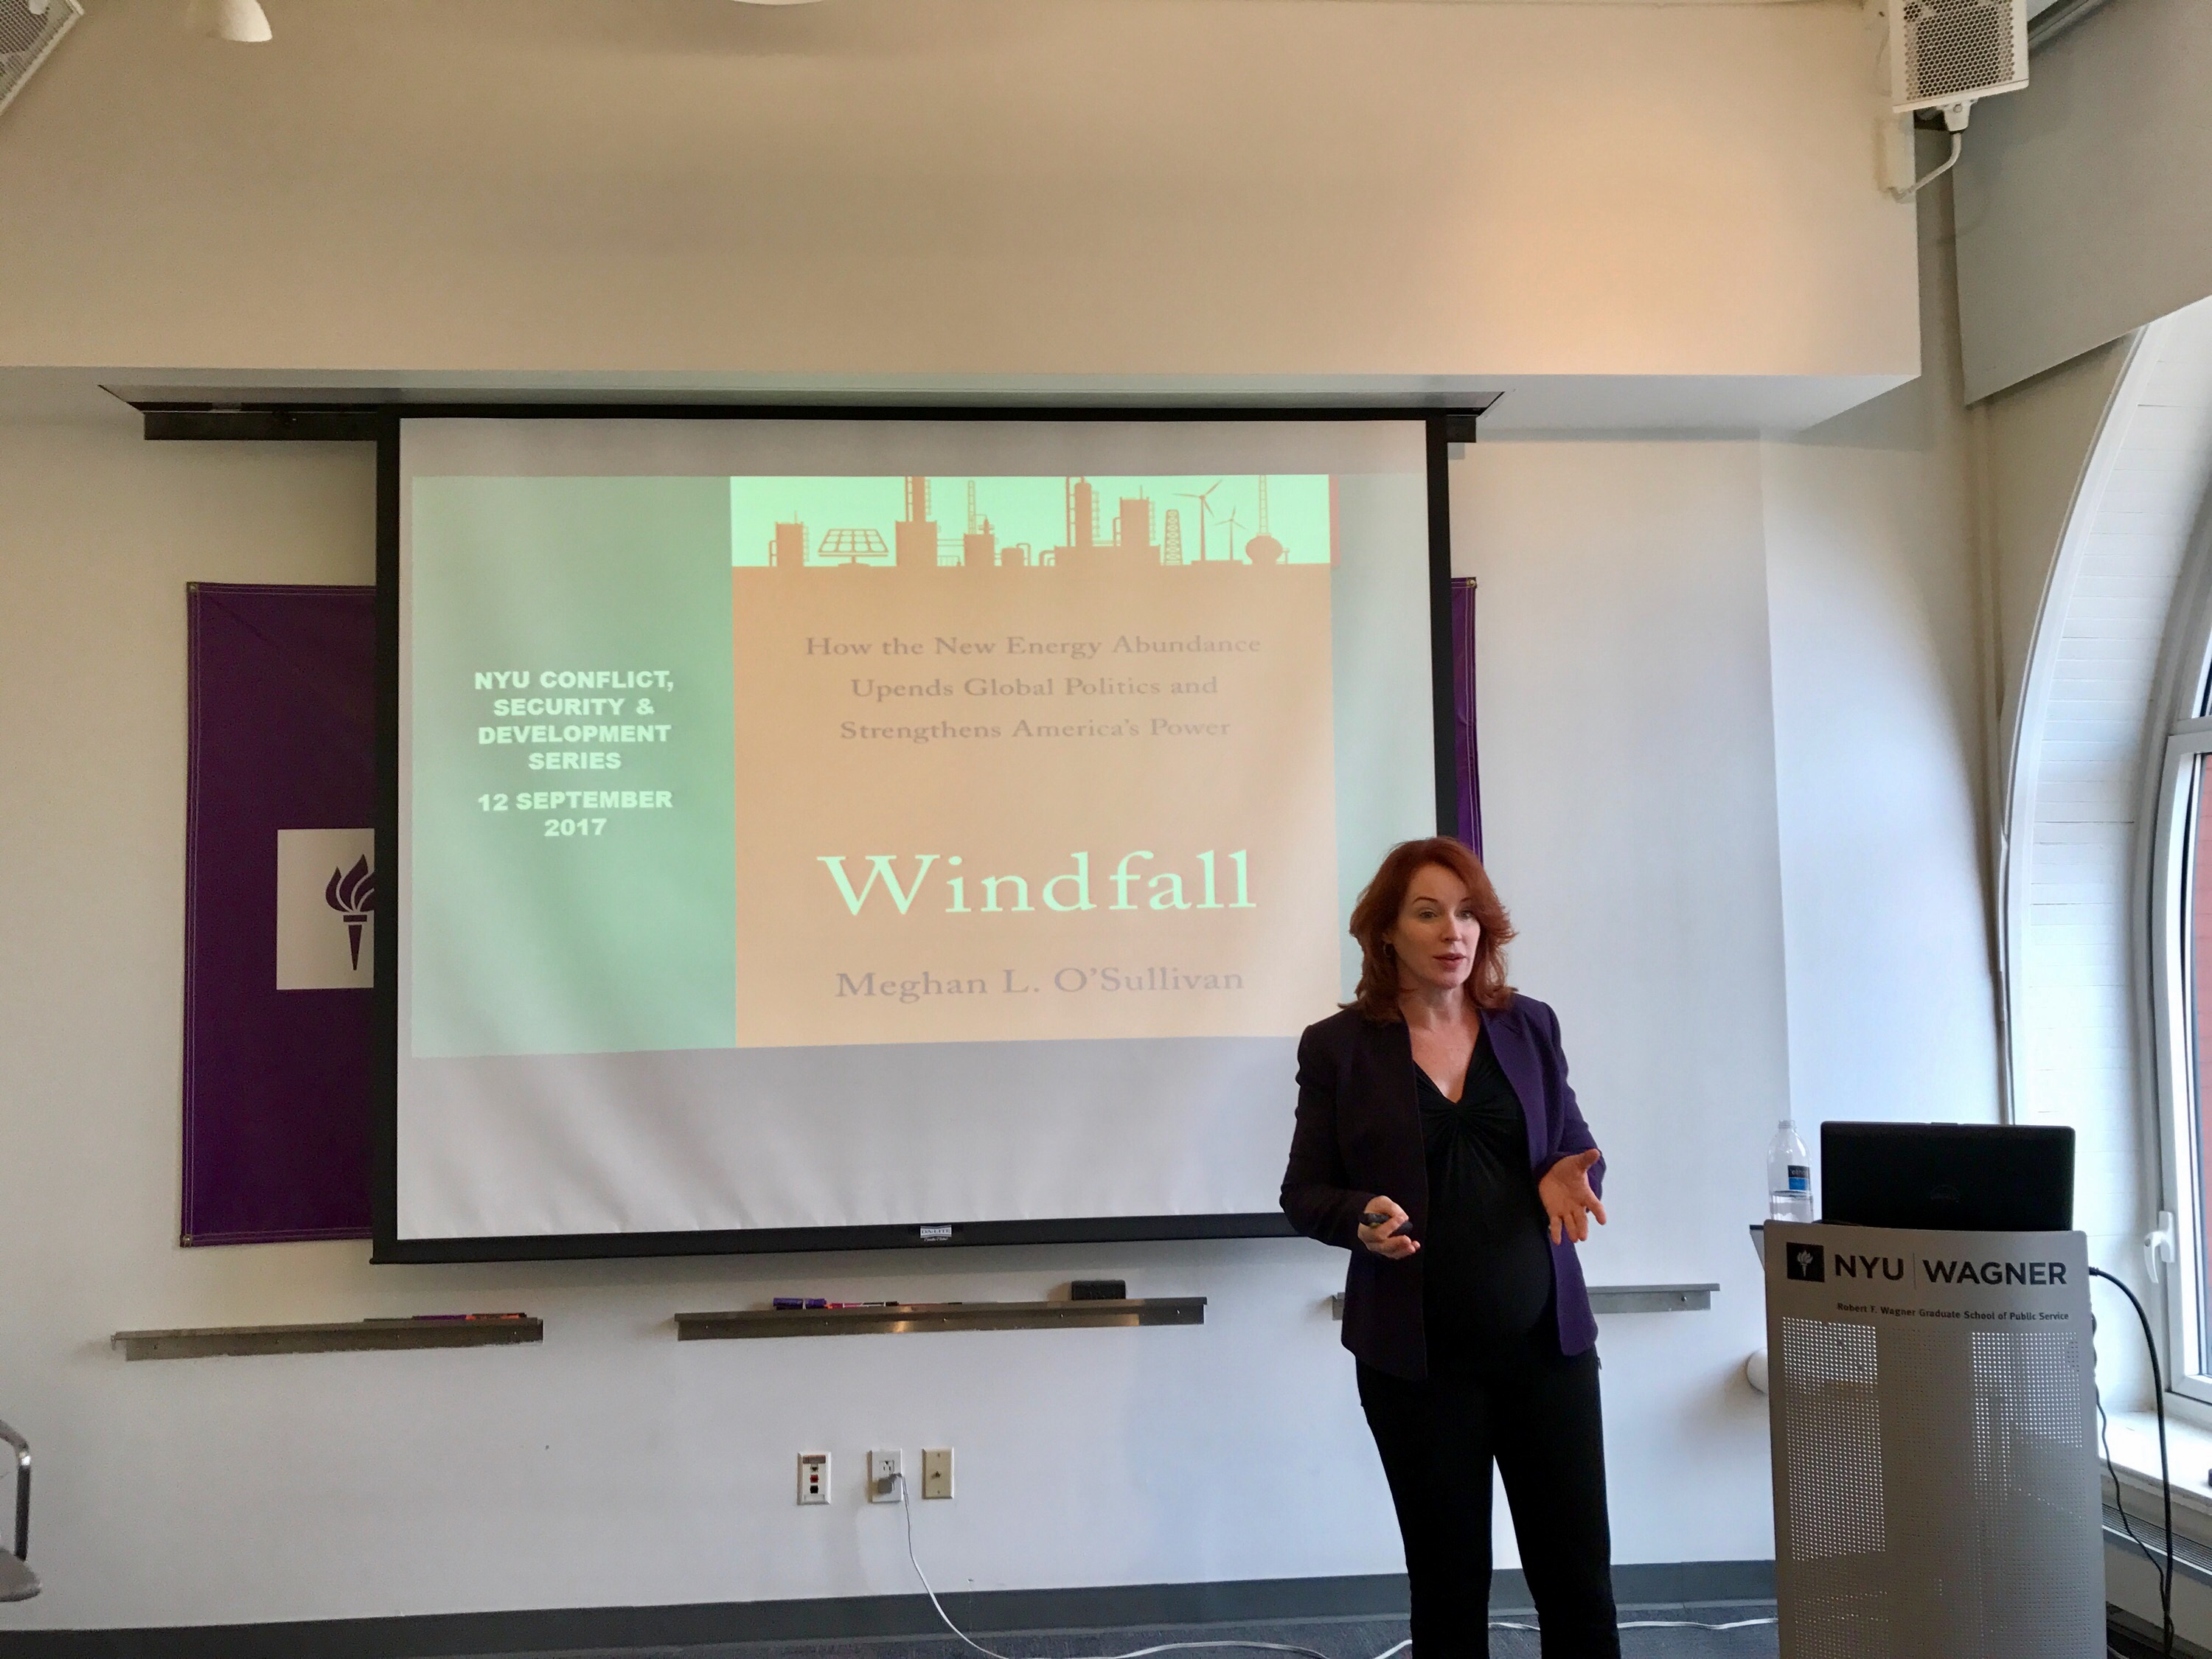 BOOK LAUNCH: WINDFALL WITH MEGHAN L. O'SULLIVAN